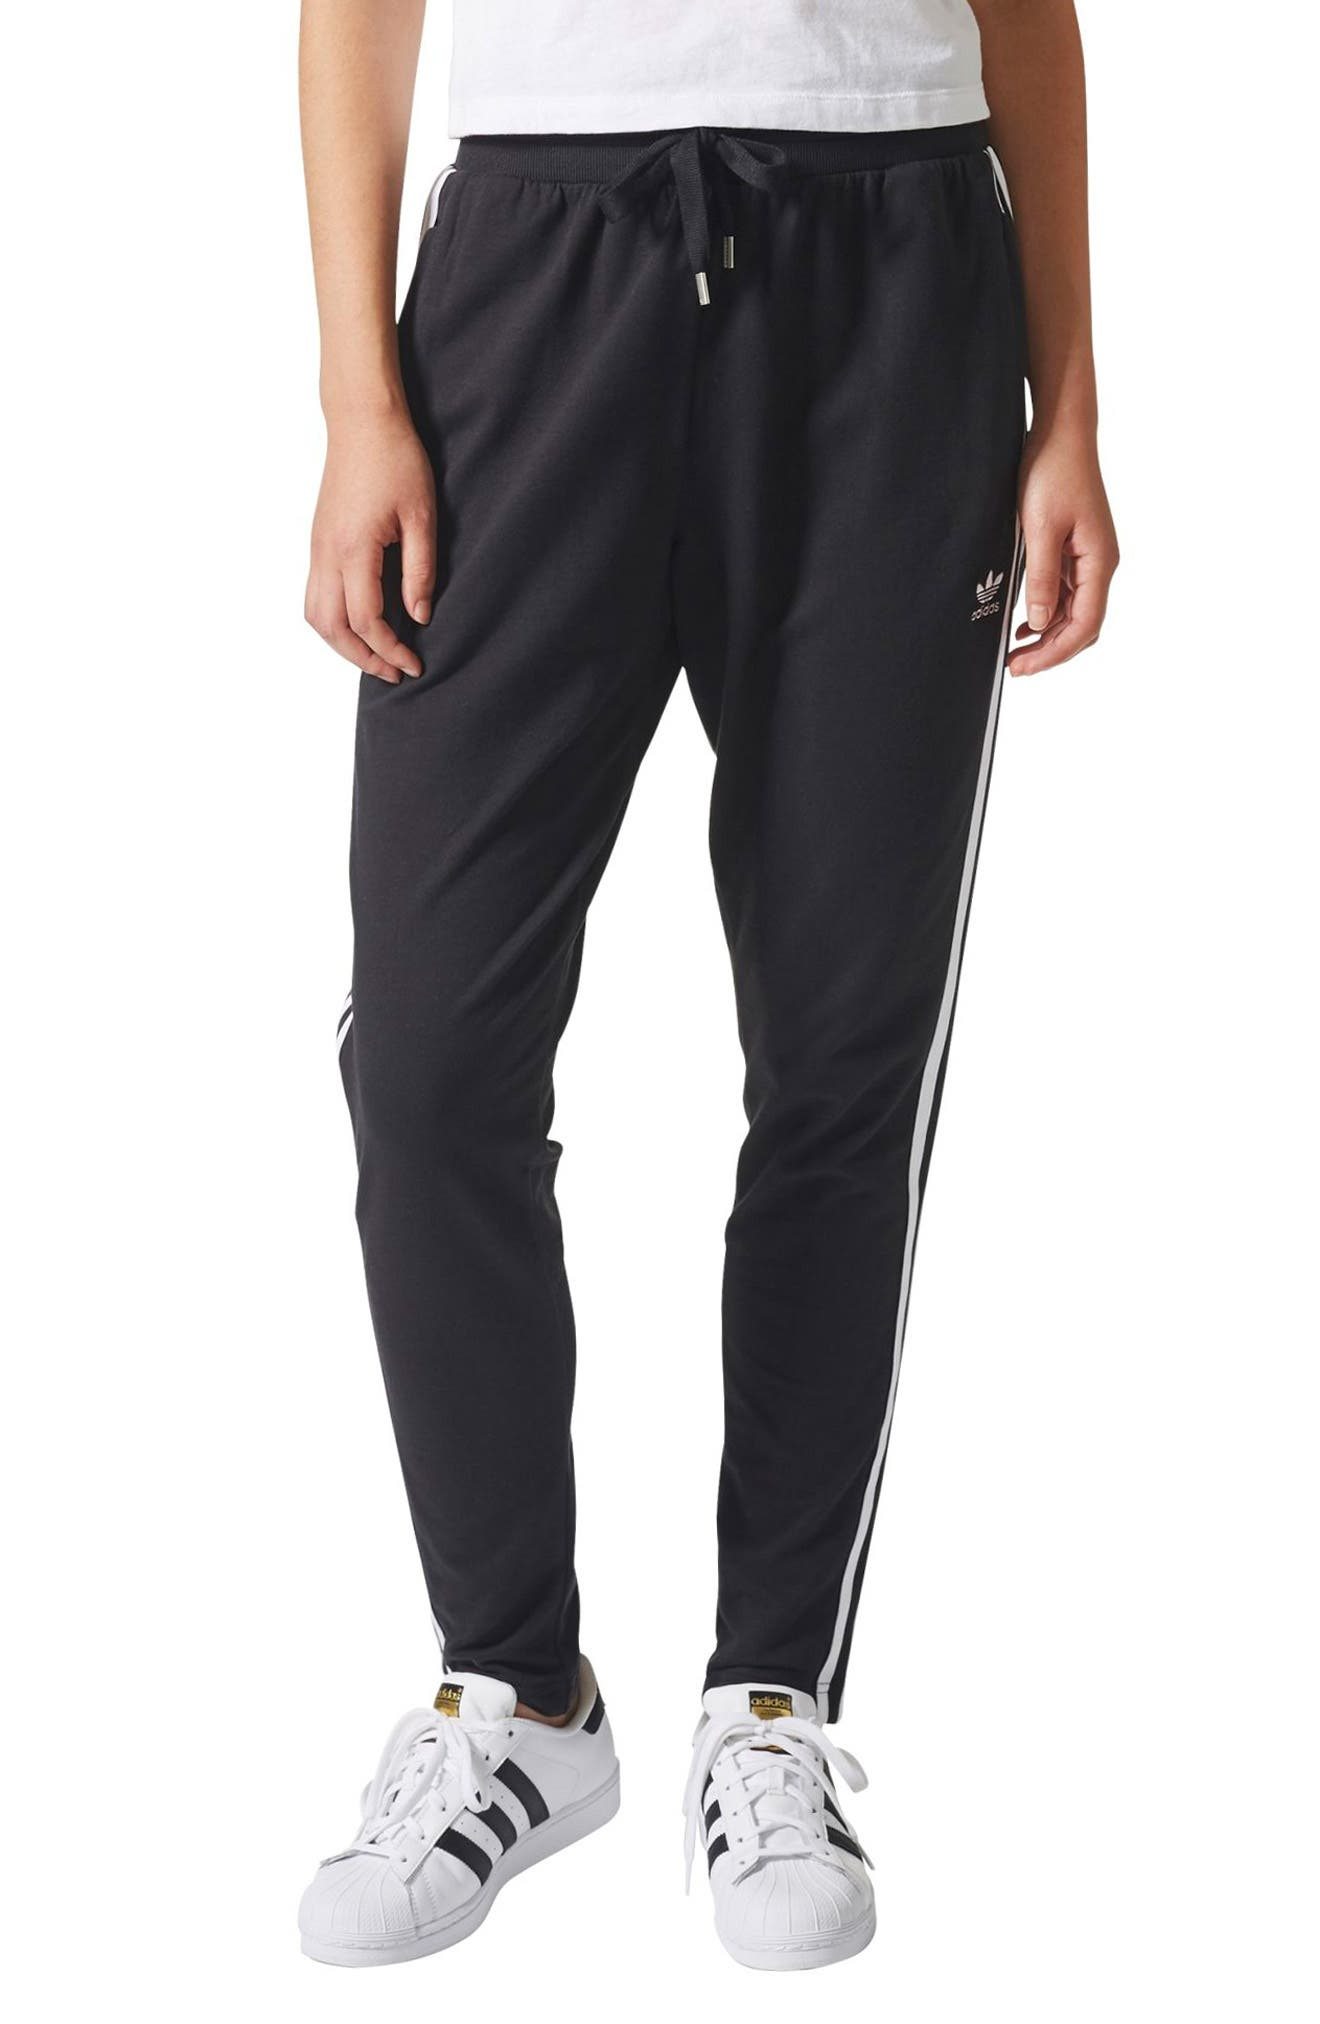 Alternate Image 1 Selected - adidas 3-Stripes Tapered Pants